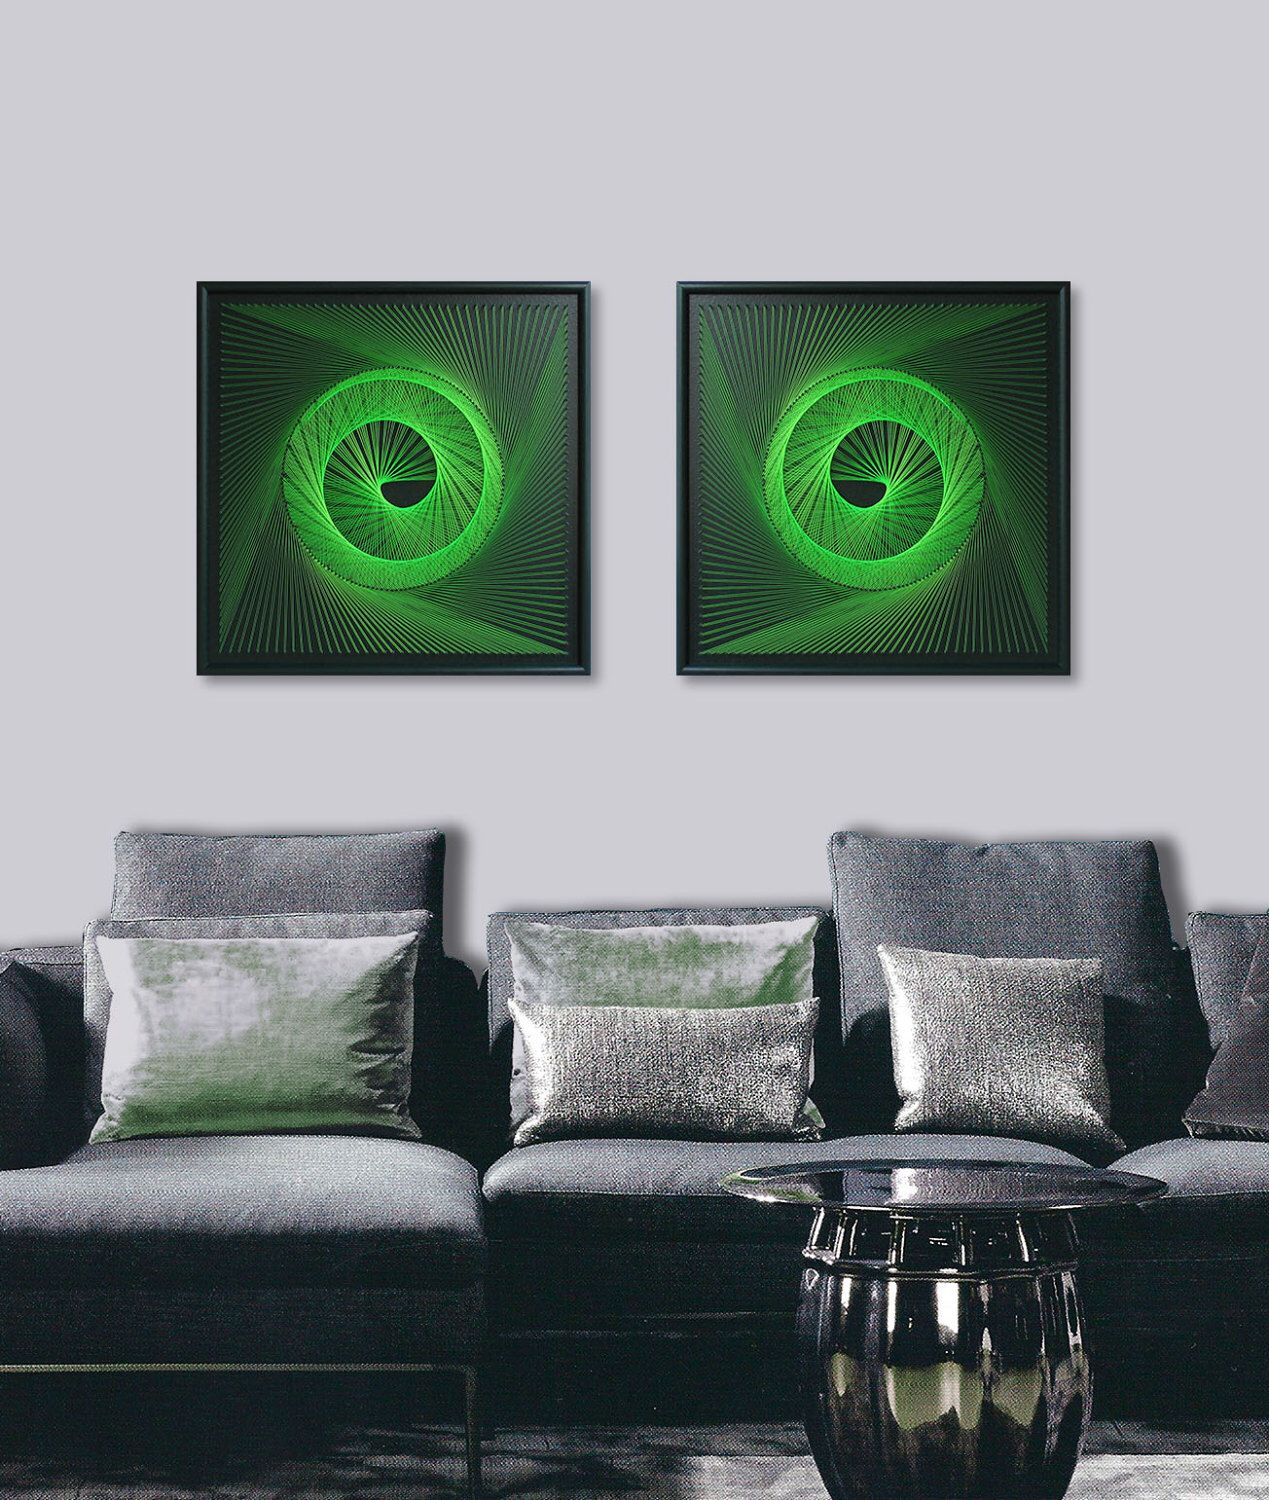 3D String Art Set In Apple Green   Abstract Zen Wall Art   UV Art Wall